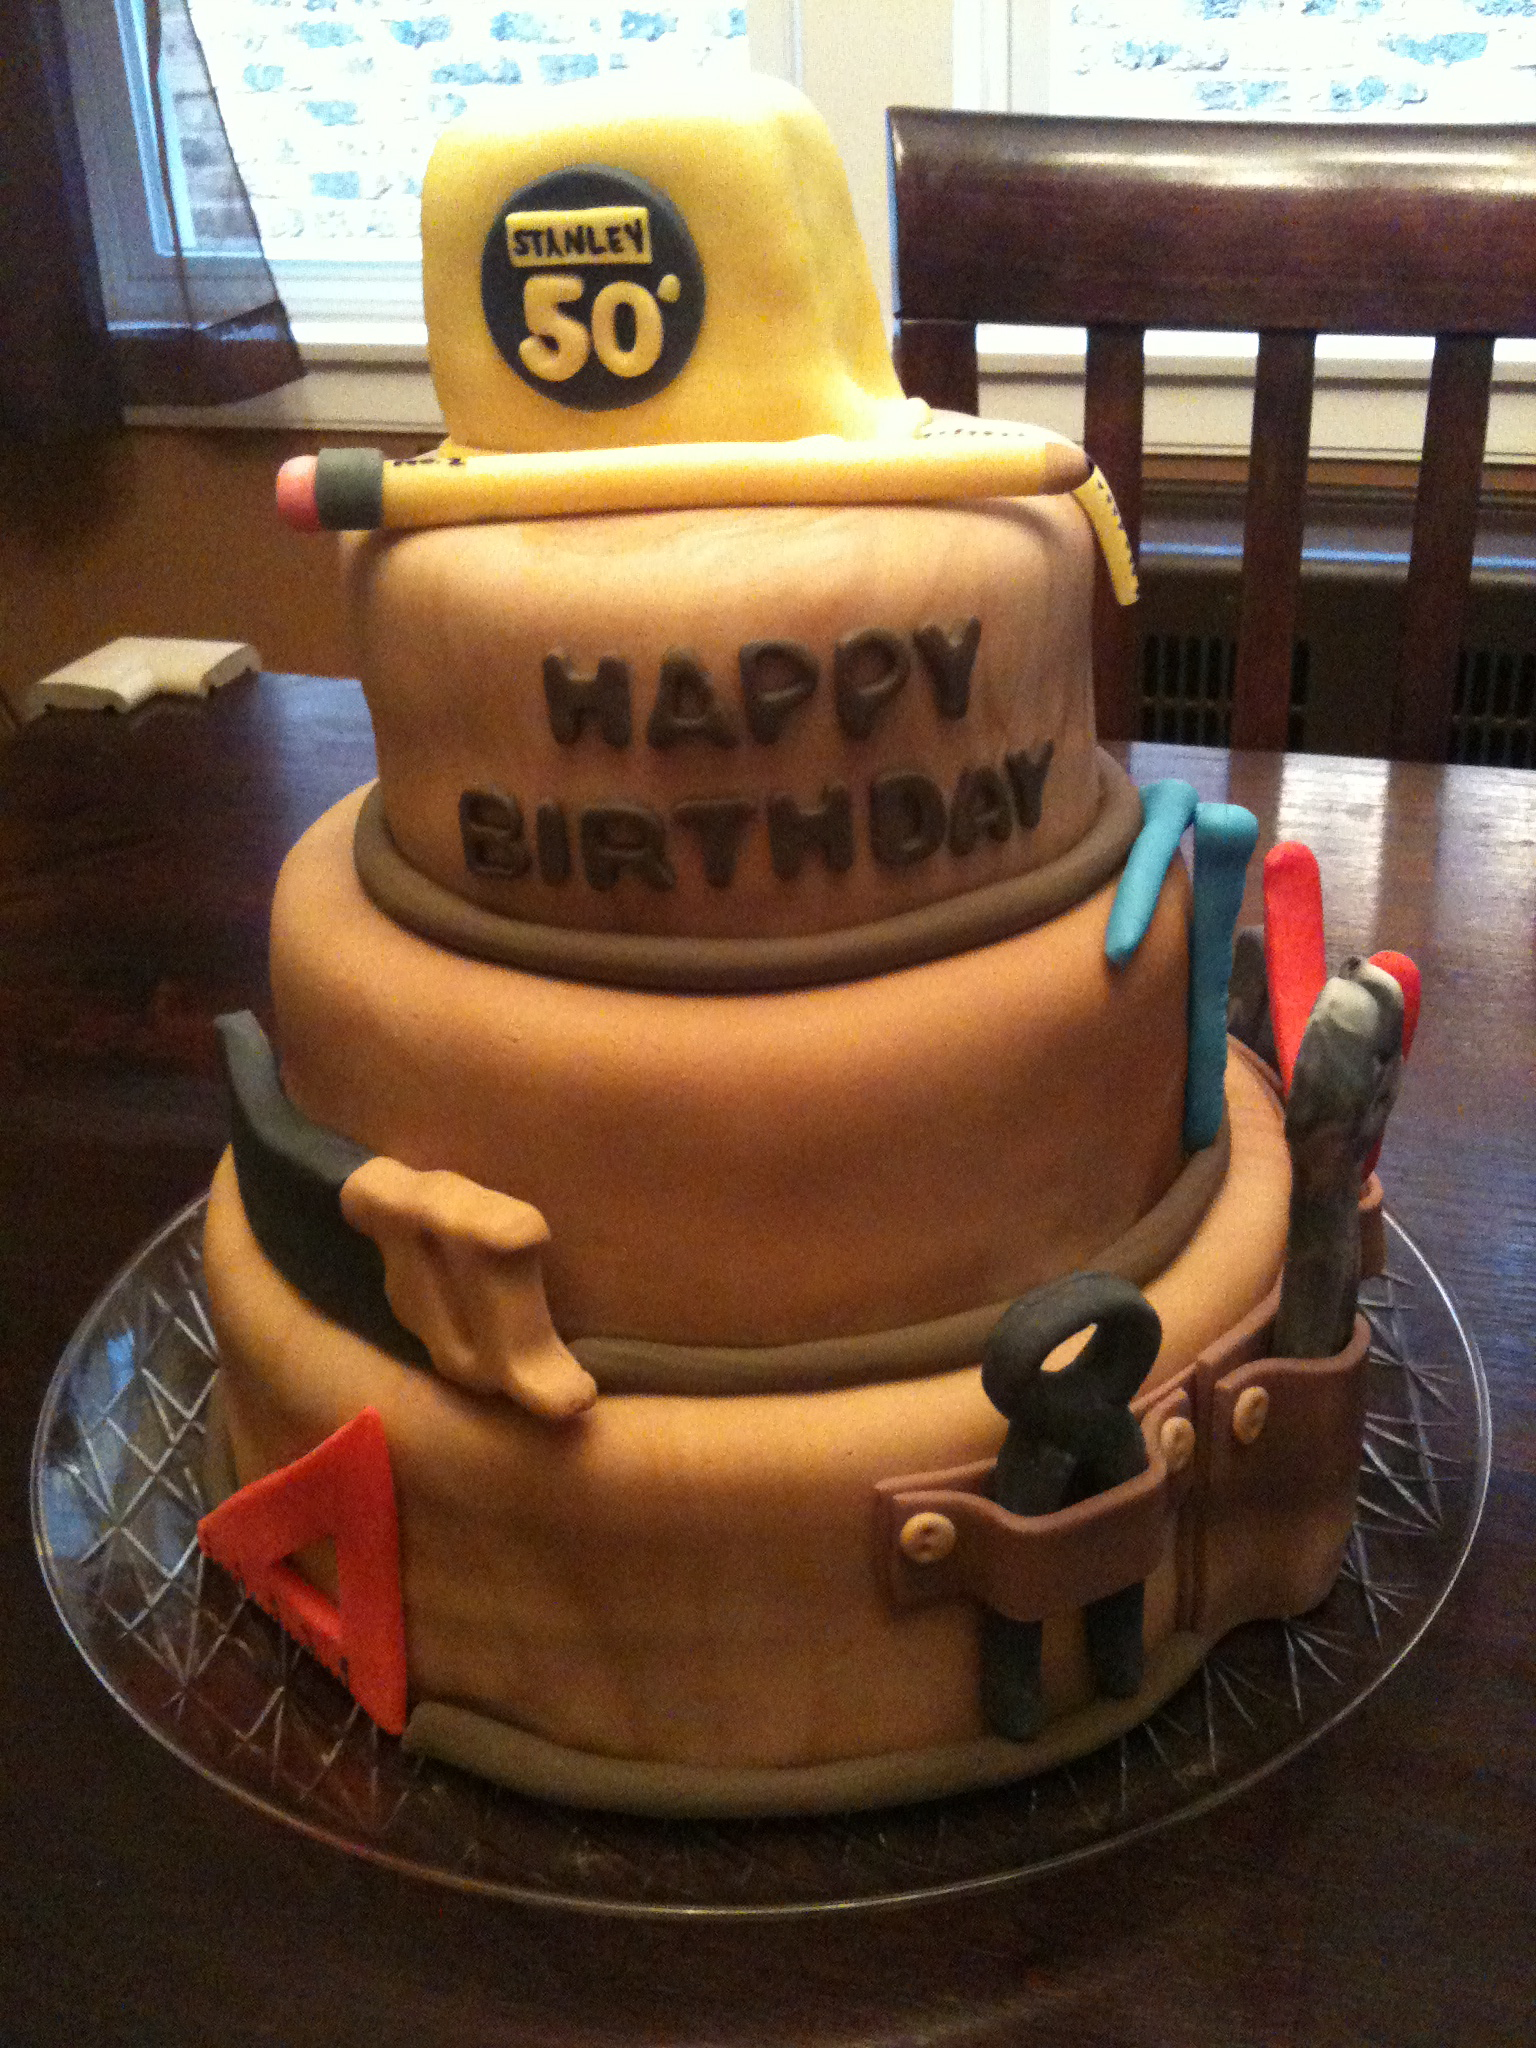 Heres My First Attempt At A Three Tiered Cake The Happy Occasion Was 50th Birthday Surprise Layers Included Triple Chocolate Fudge Vanilla